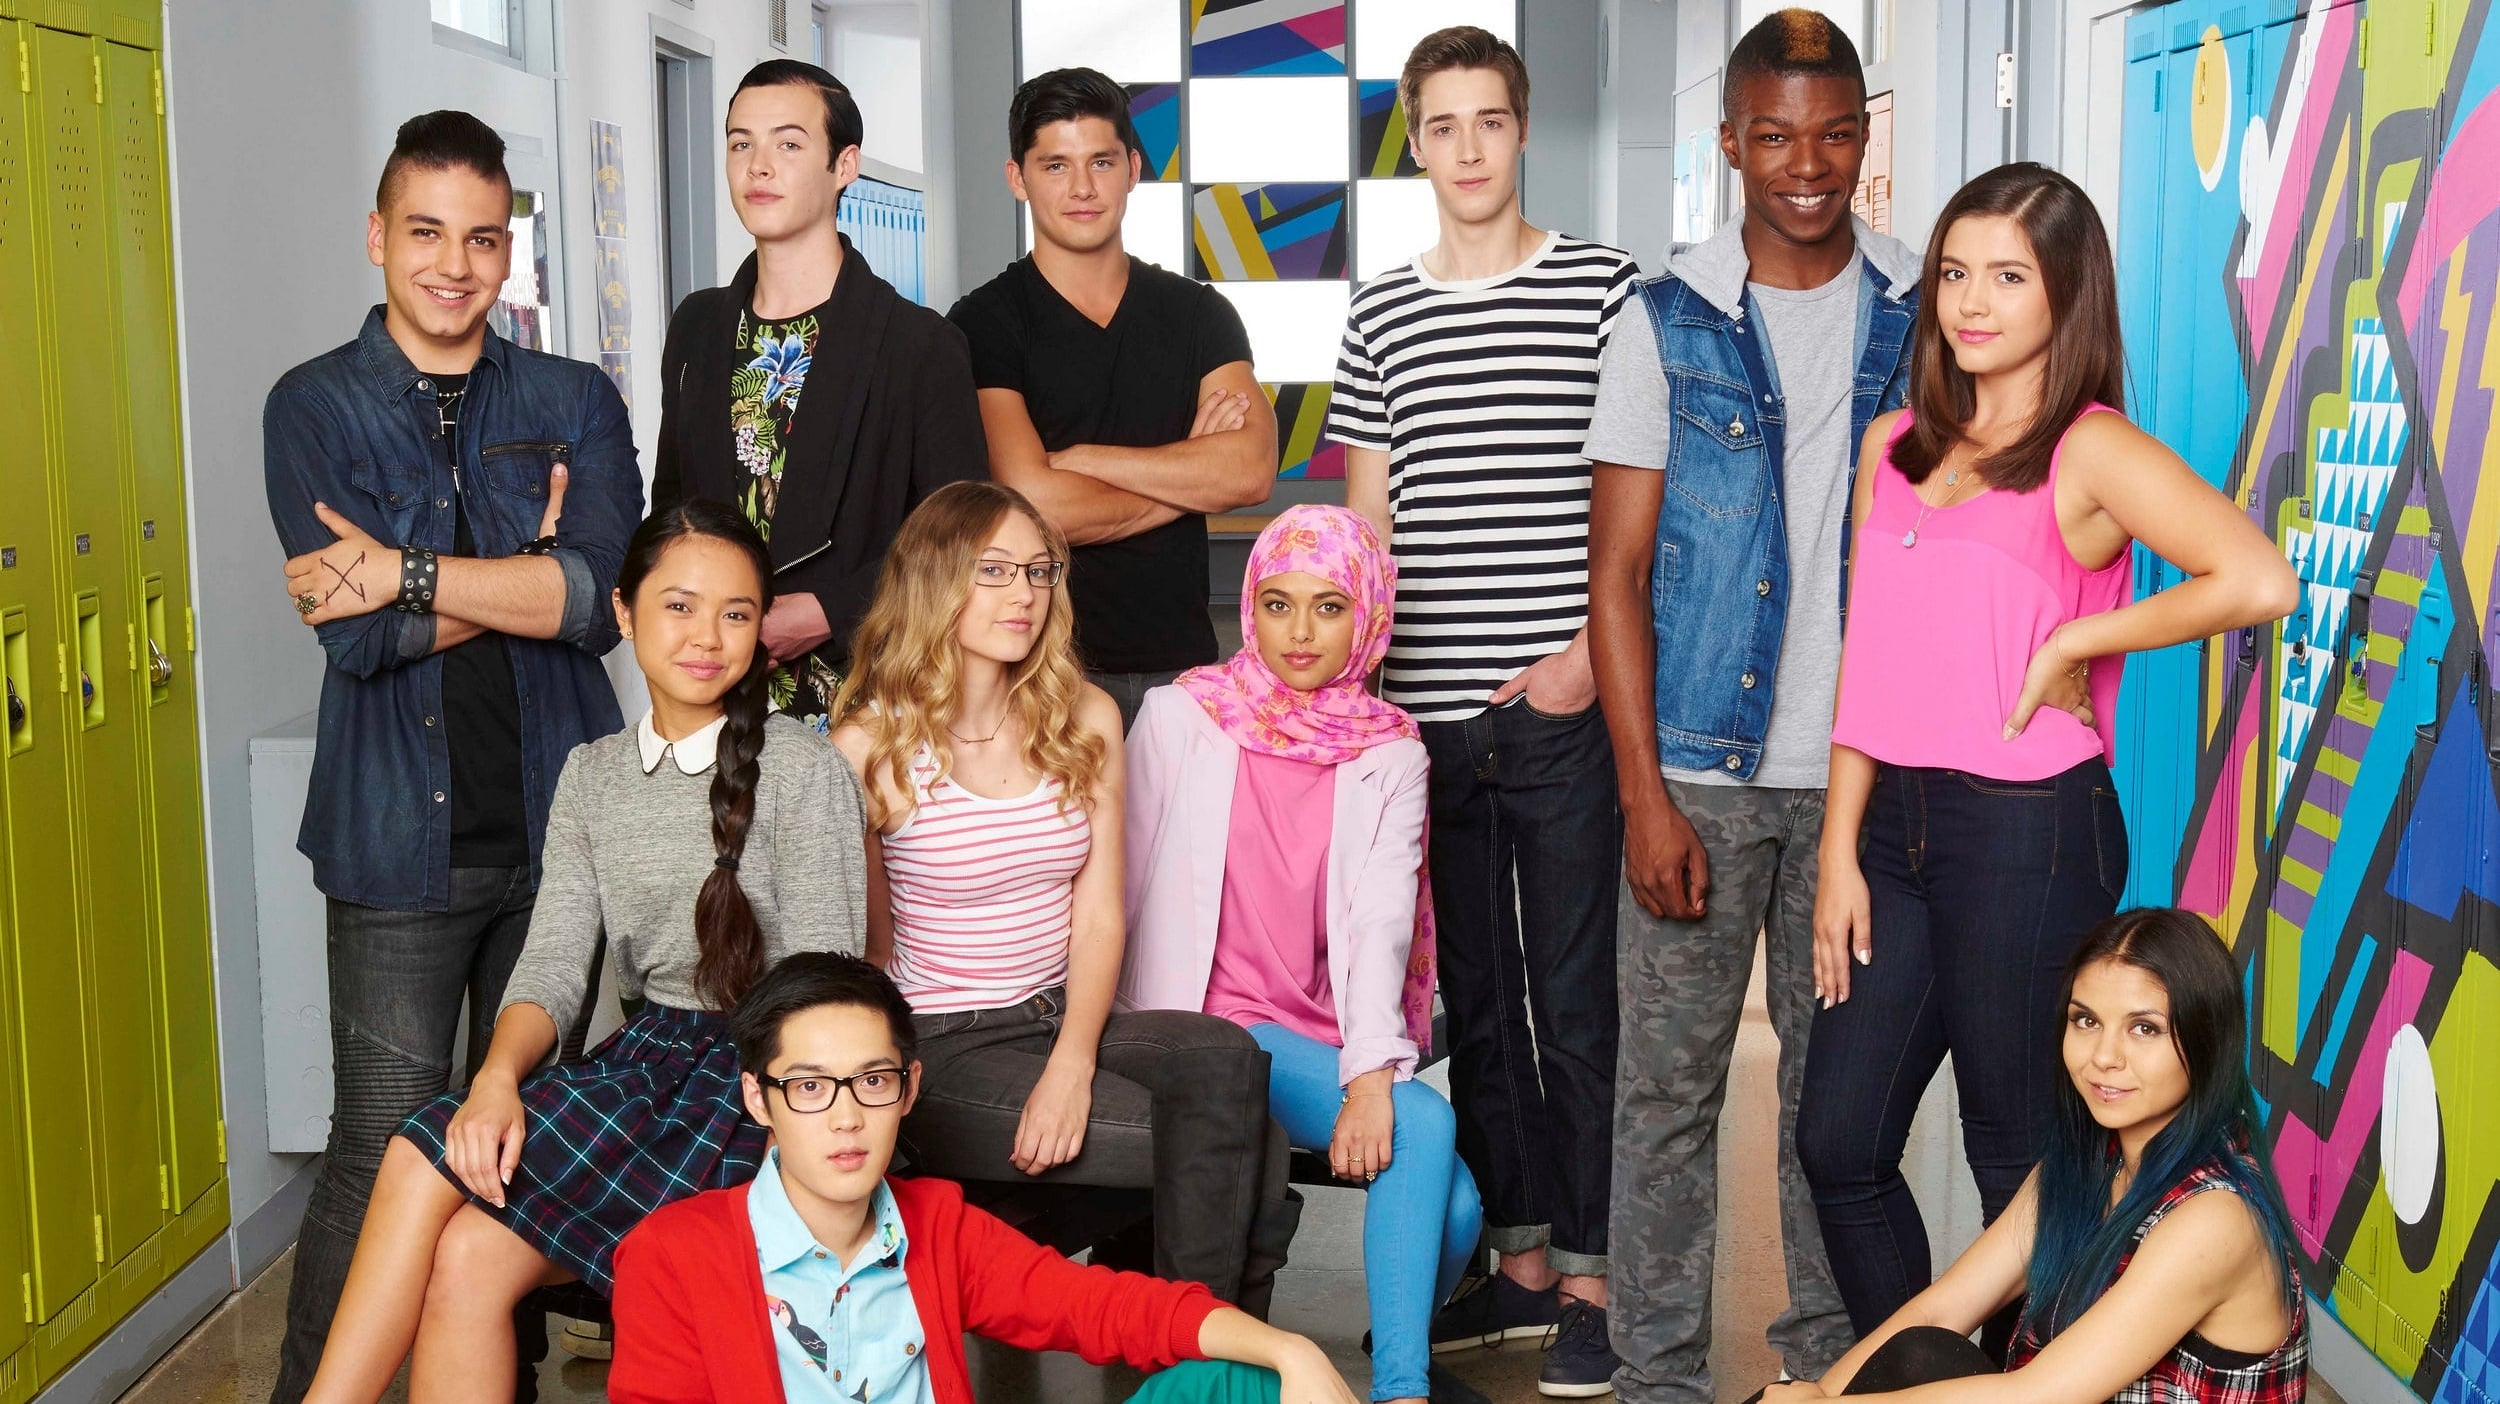 Best Images And Tv Shows Like Degrassi